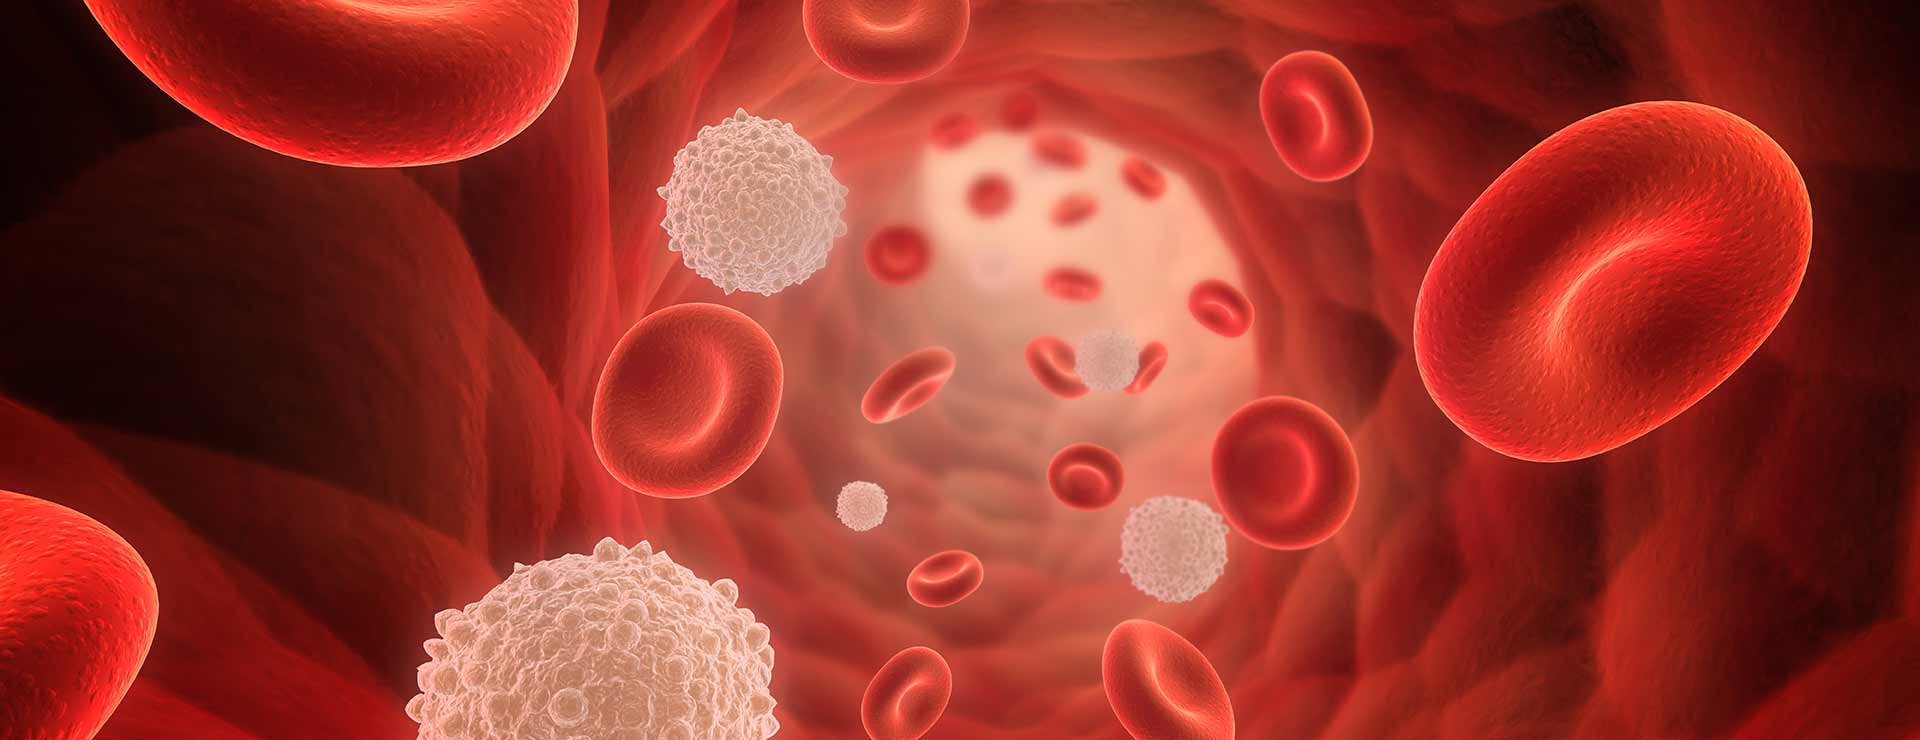 Rendering of red and white blood cells